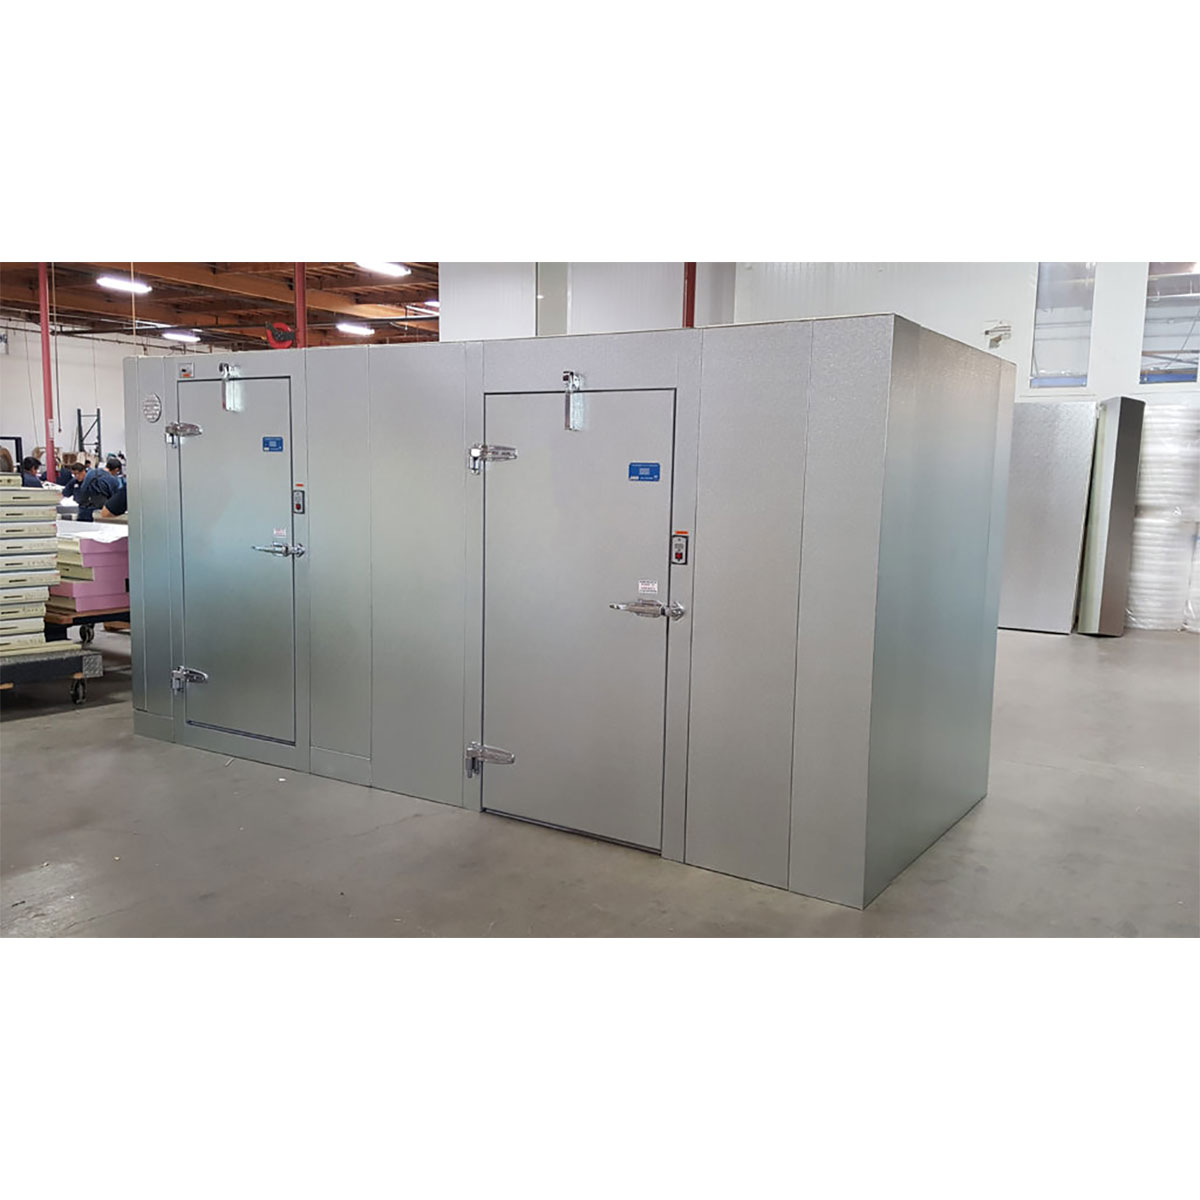 Walk-in Box with Two Doors Commercial Cooling Par Engineering Inc. City of Industry